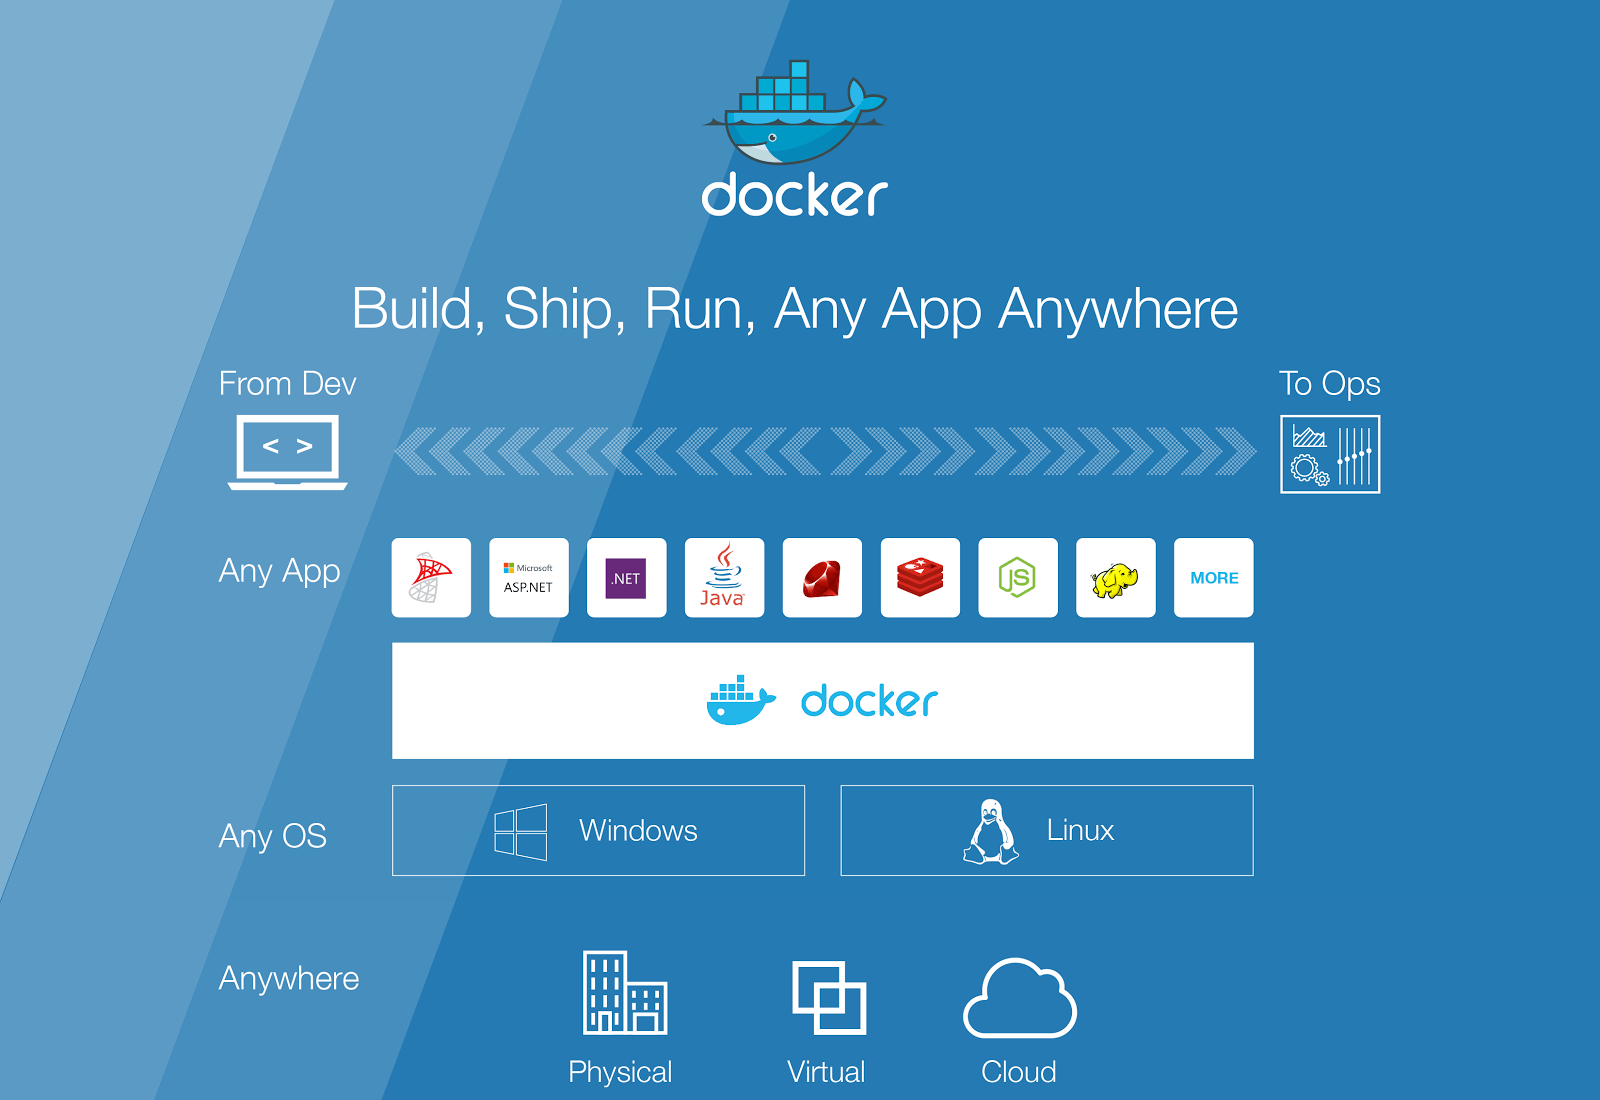 Docker container management for Windows containers